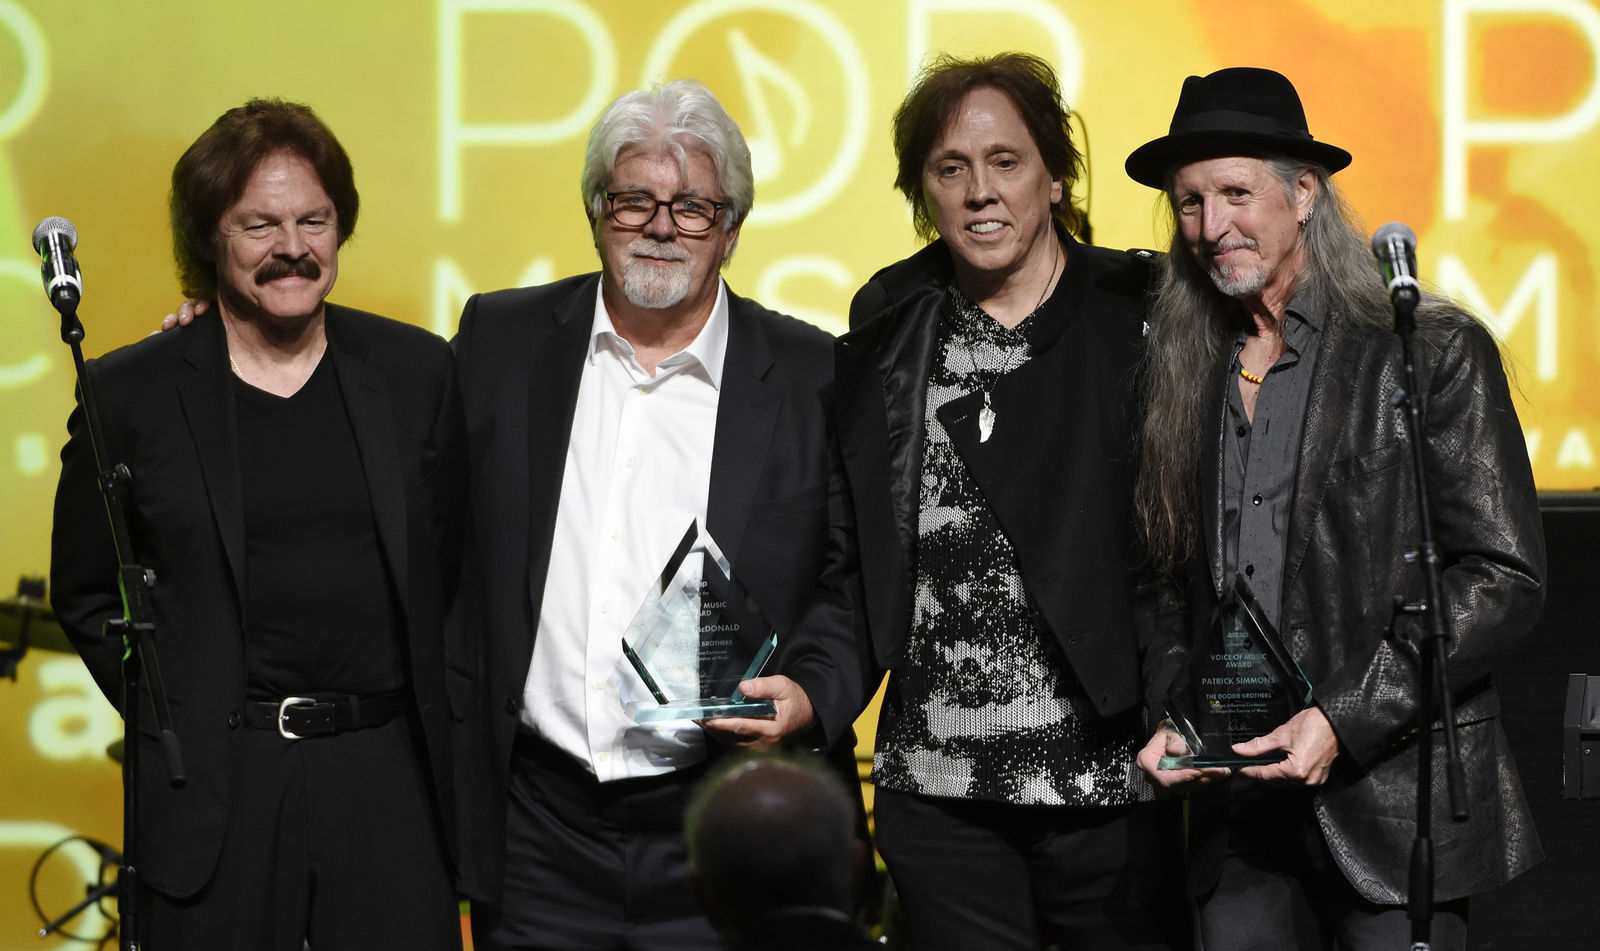 FILE - This April 29, 2015 file photo shows , from left, Tom Johnston, Michael McDonald, John McFee and Pat Simmons of the band the Doobie Brothers onstage after receiving the ASCAP Voice of Music Award at the 32nd Annual ASCAP Pop Music Awards in Los Angeles. The Doobie Brothers are among the 16 acts nominated for the Rock and Roll Hall of Fame's 2020 class. (Photo by Chris Pizzello/Invision/AP, File)